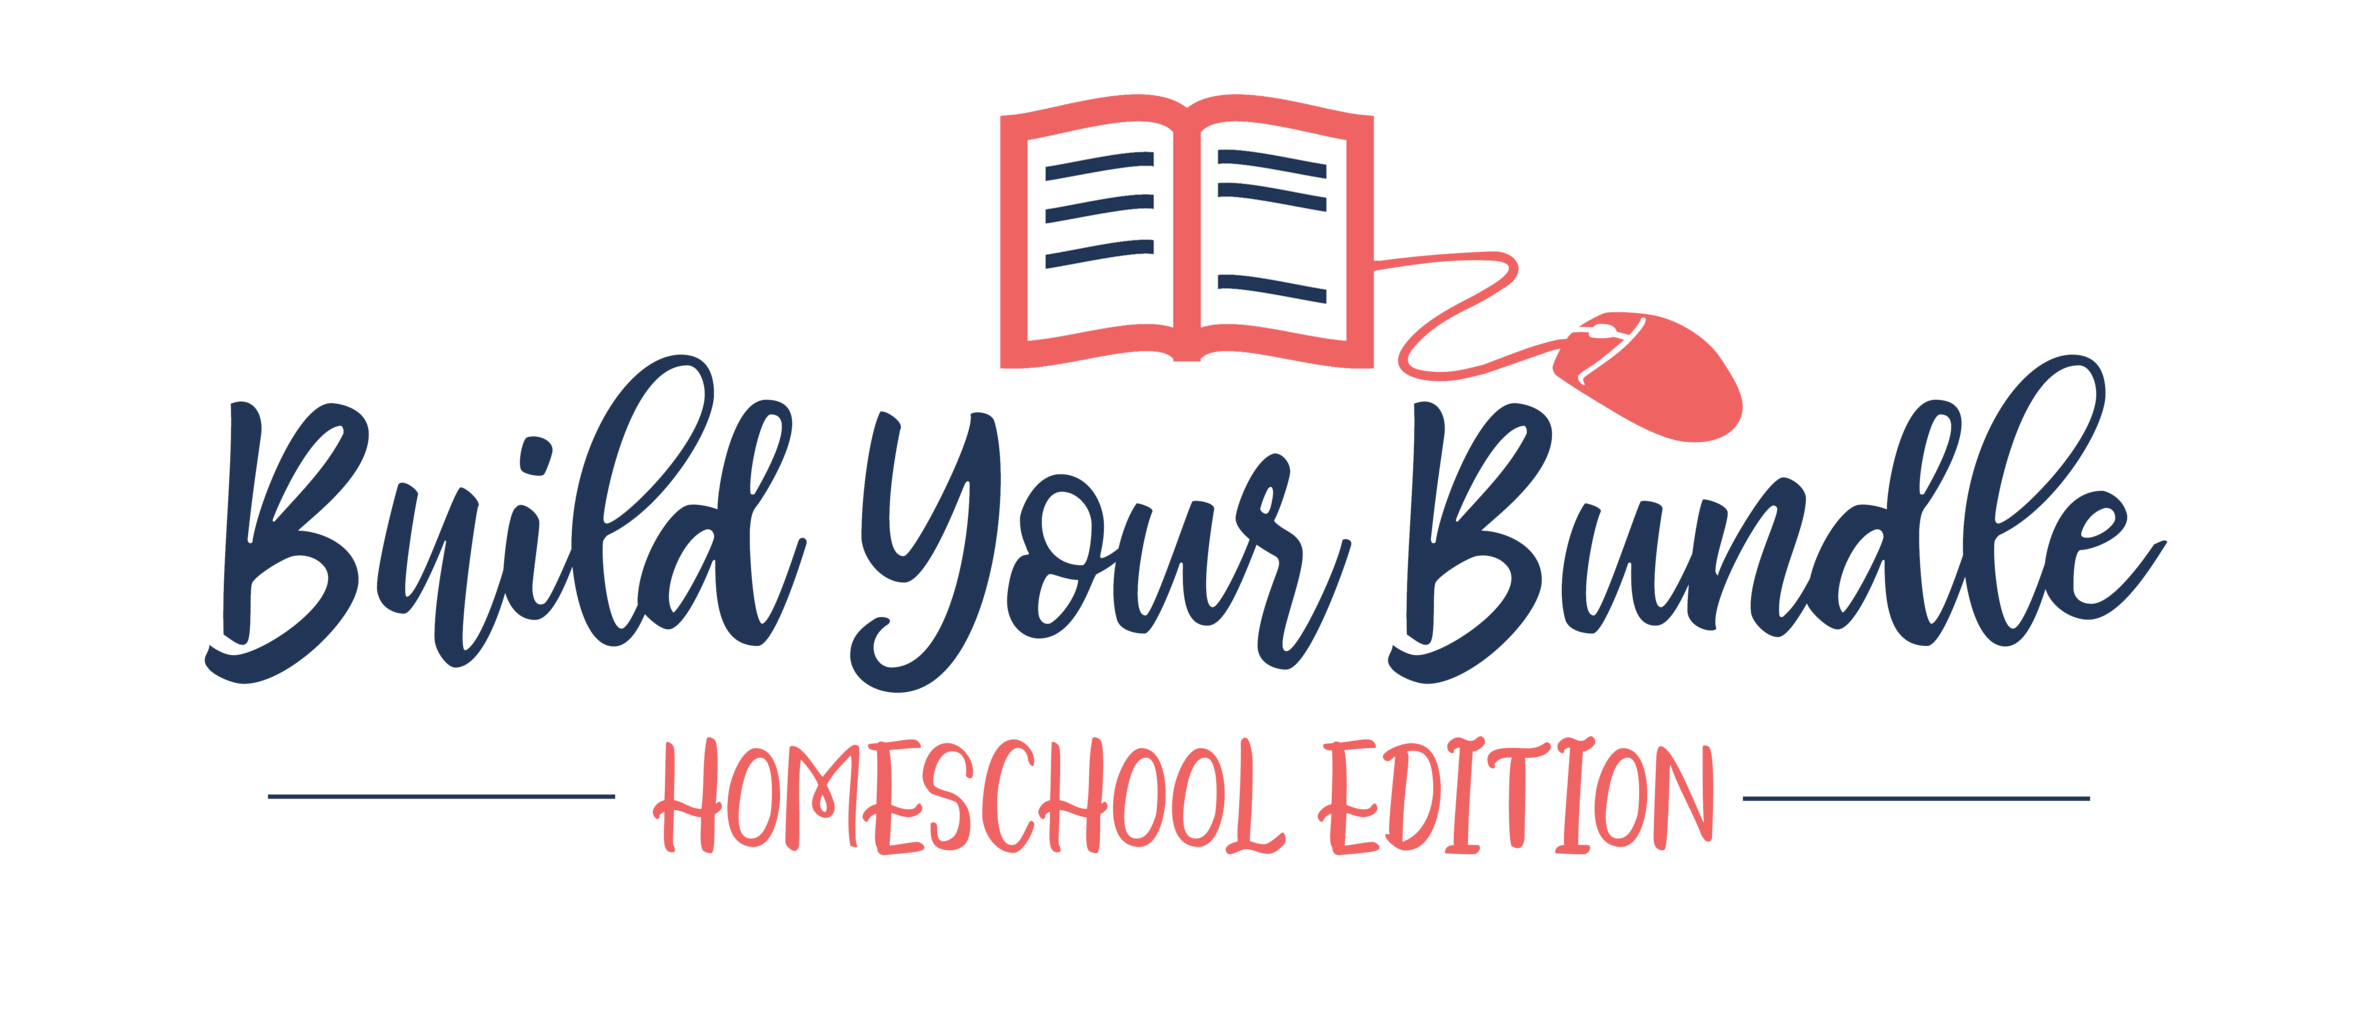 Check out the 2020 Build Your Bundle Homeschool Edition